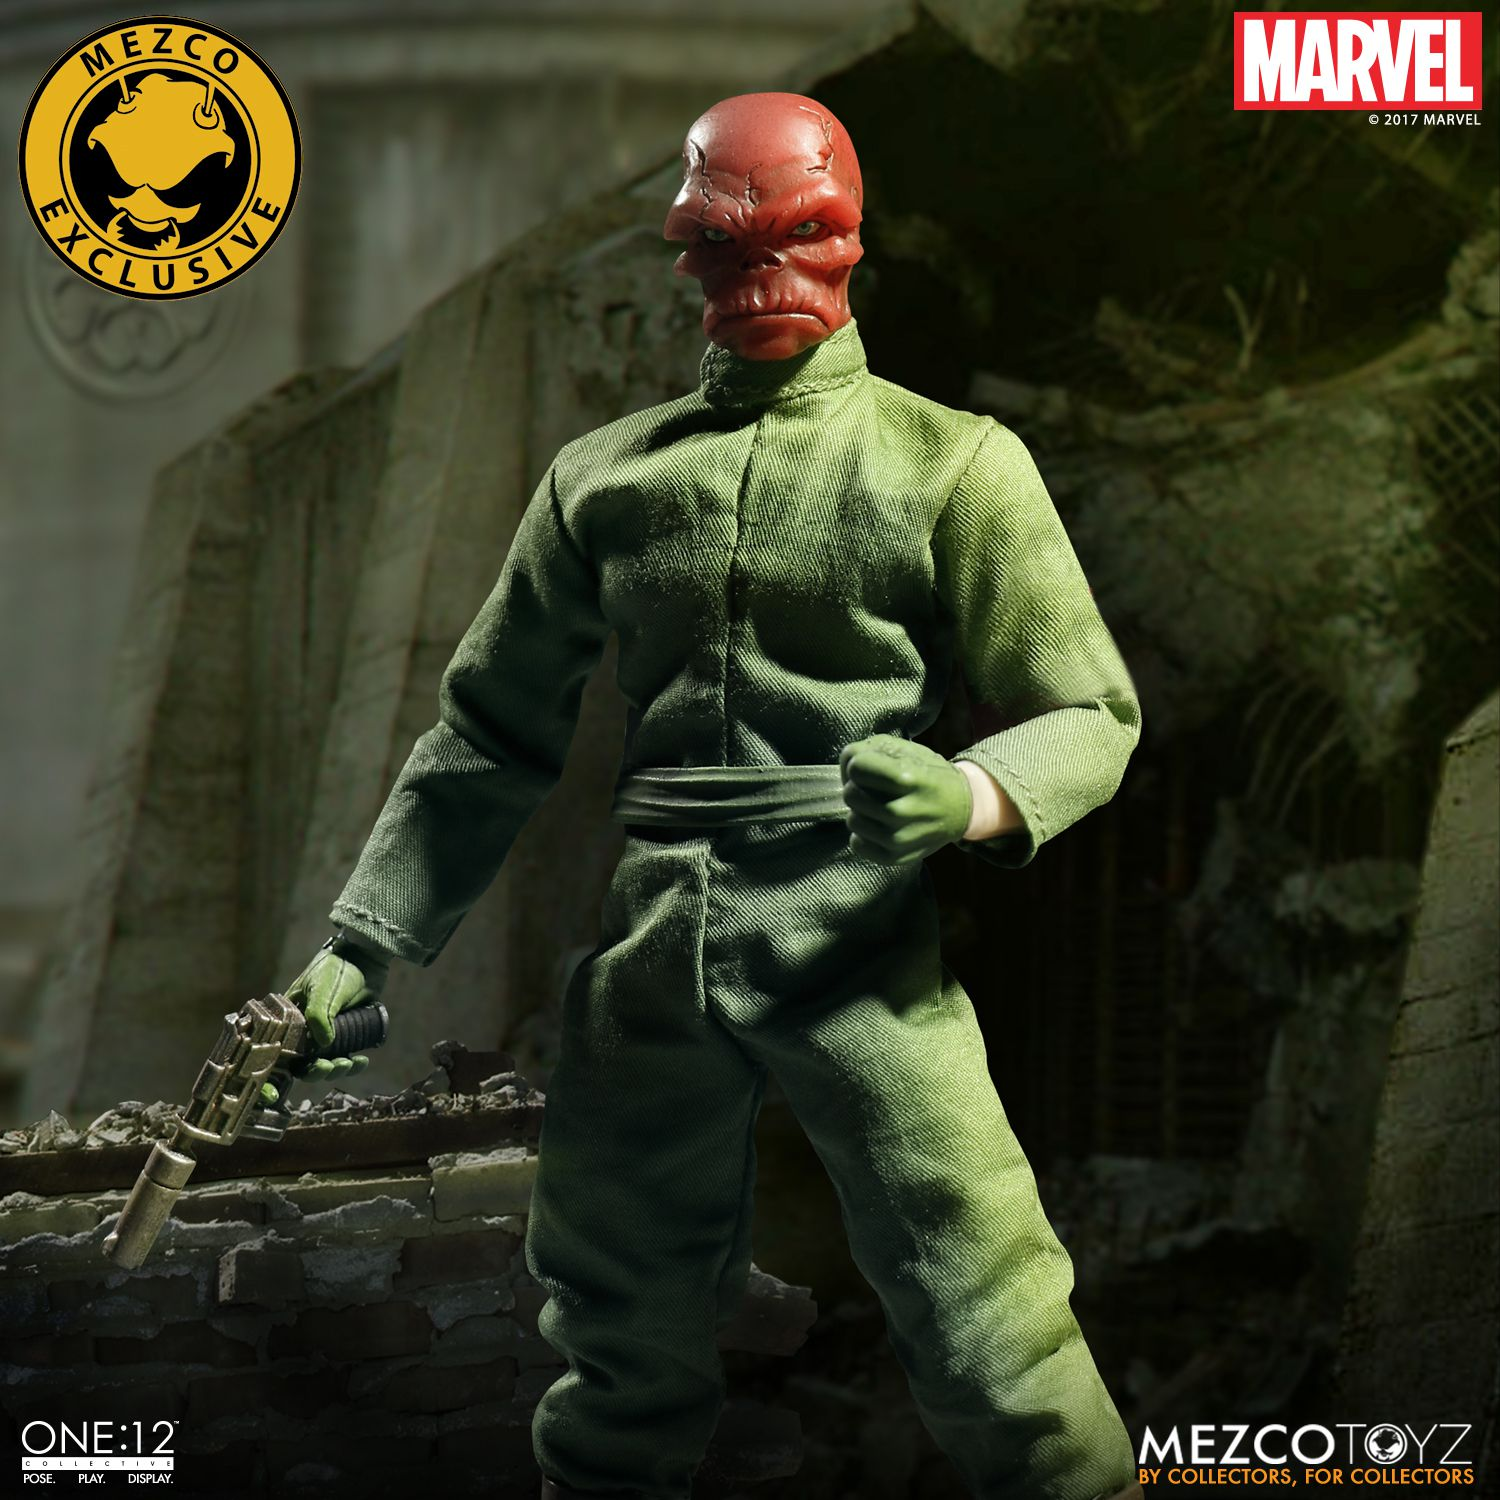 [Action Figures] Todo sobre Action Figures, Hot Toys, Sideshows - Página 15 3867